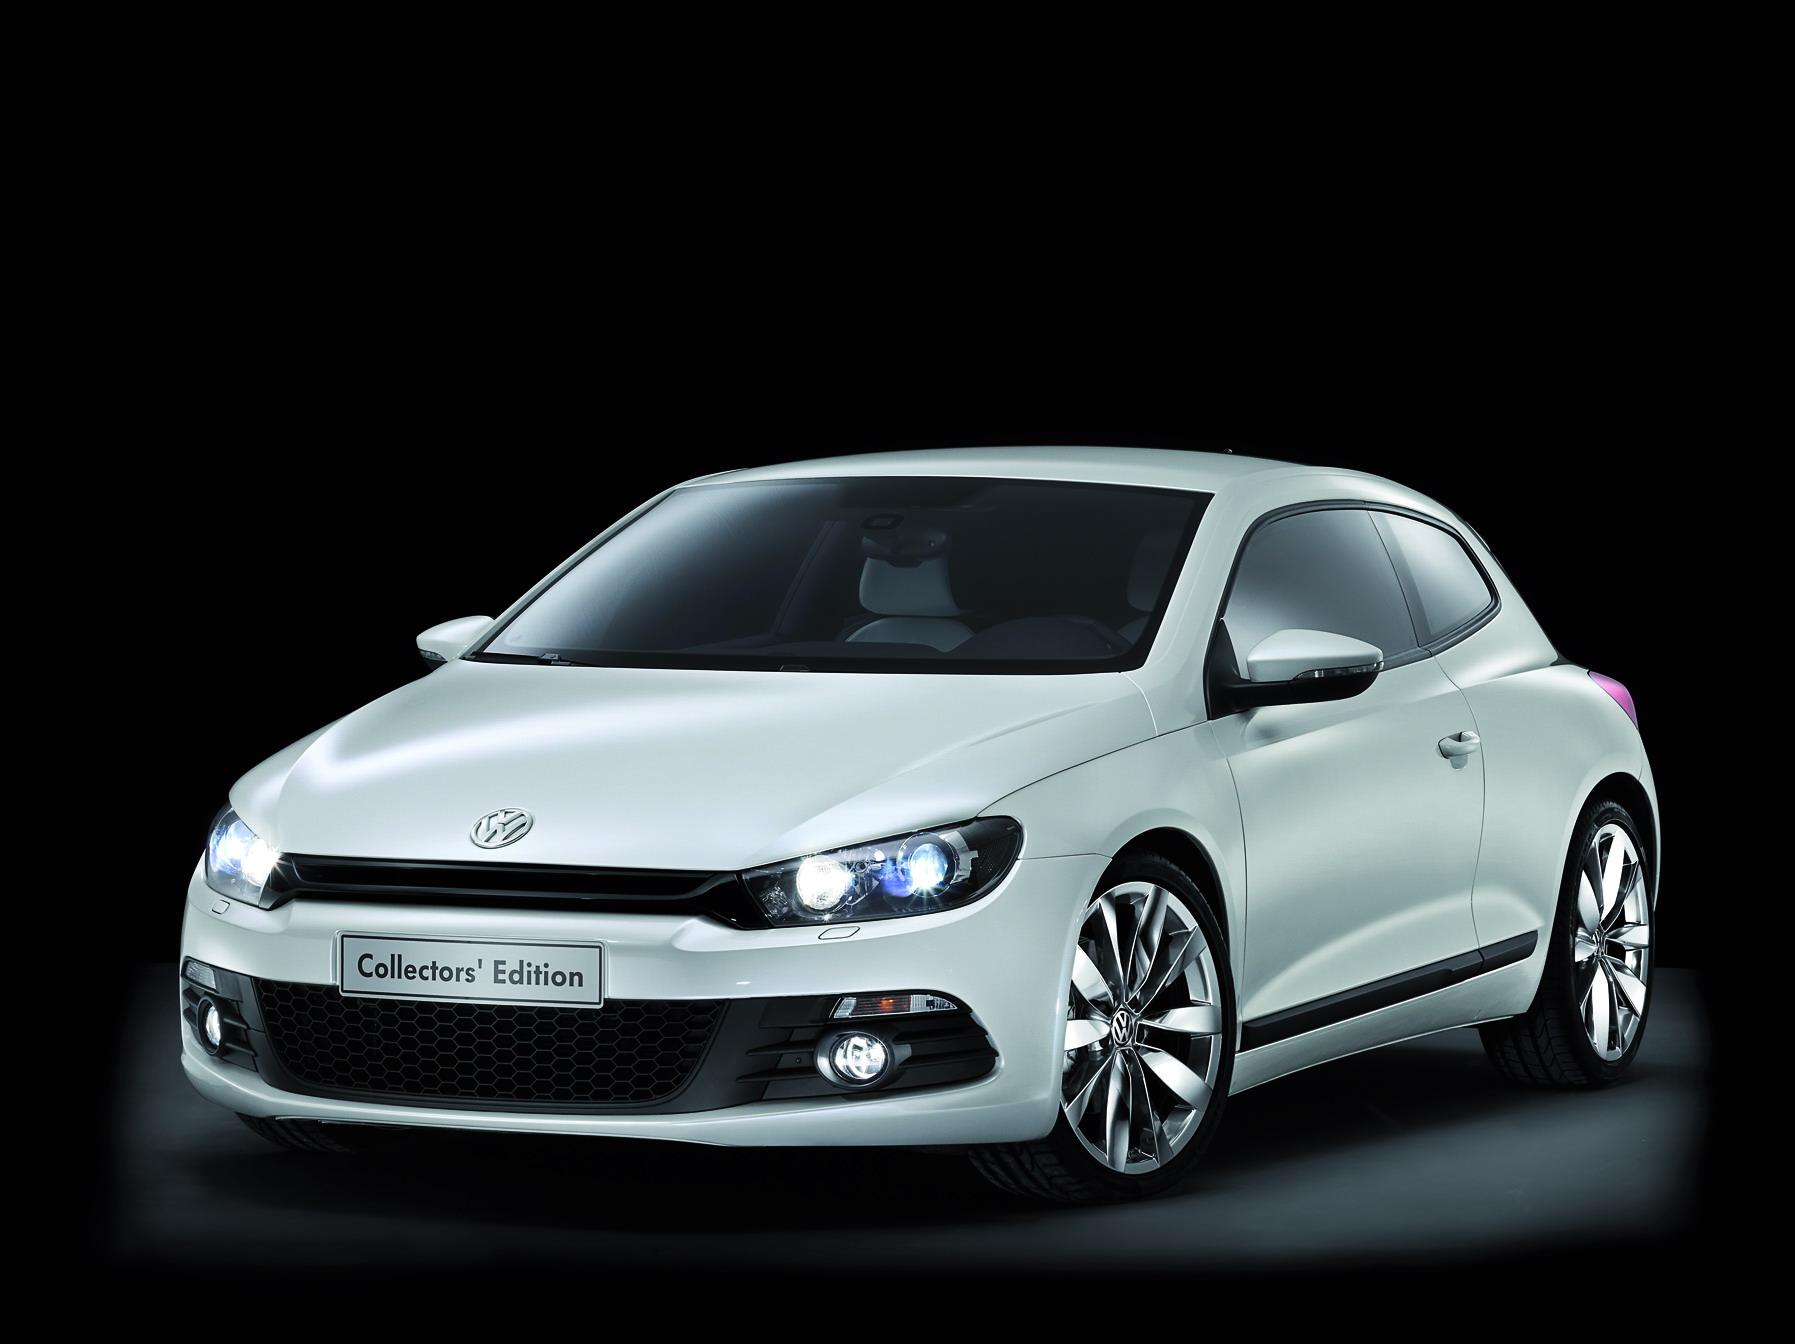 2008 Volkswagen Scirocco Quot Collectors Edition Quot And Eos